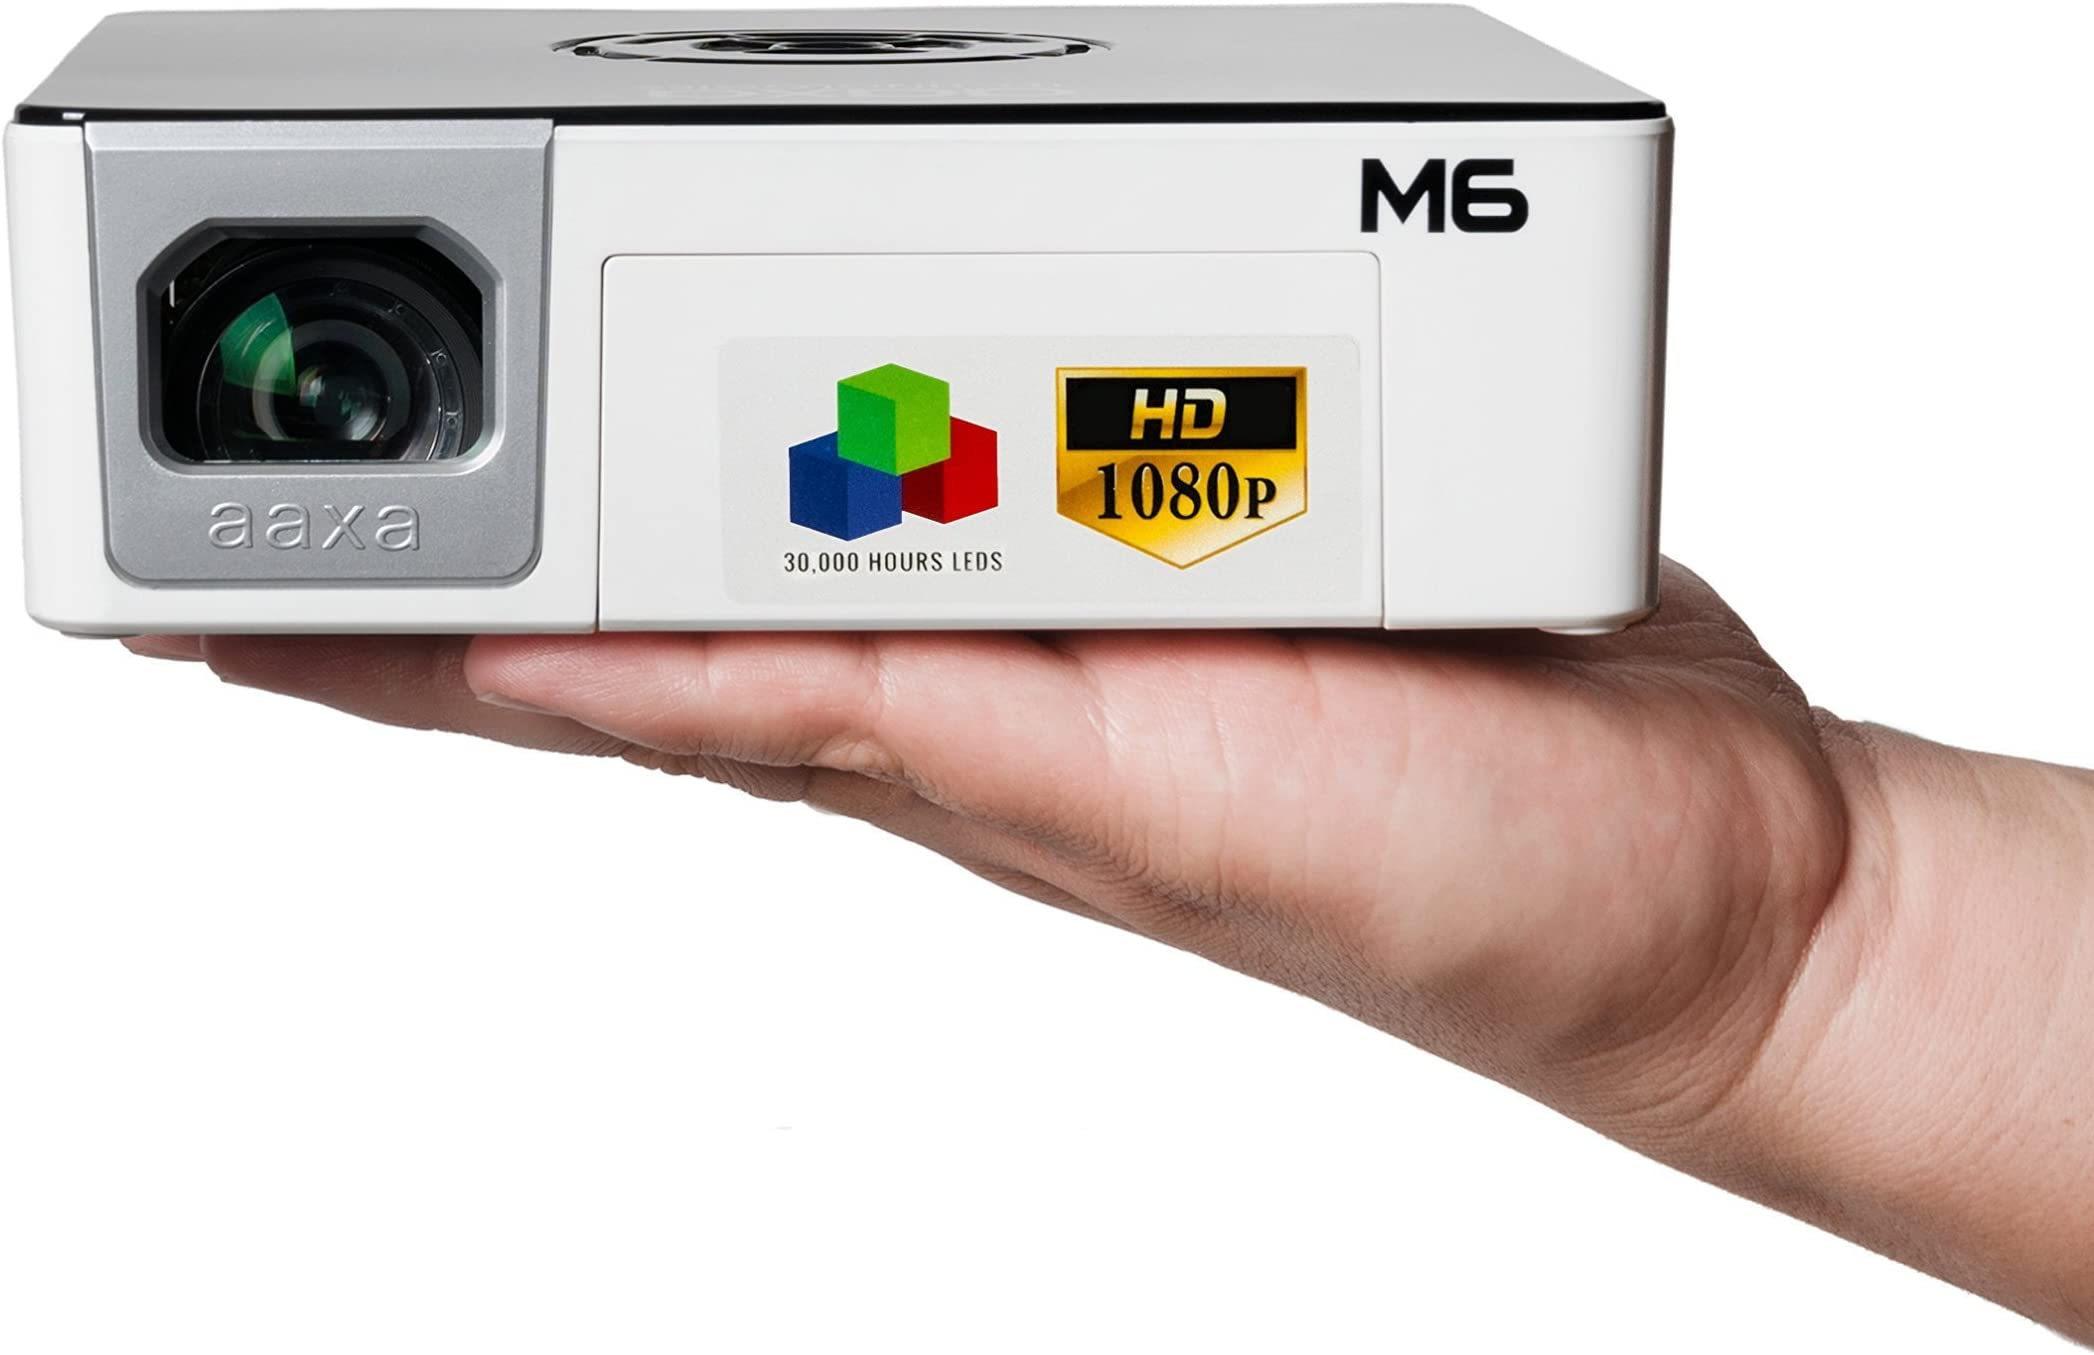 AAXA Technologies M6 Full HD Micro LED Projector with Built-in Battery - Native 1920 x 1080p FHD Resolution, 1200 Lumens, 30,000 Hour LEDs, Onboard Media Player, Business/Home Theater Use